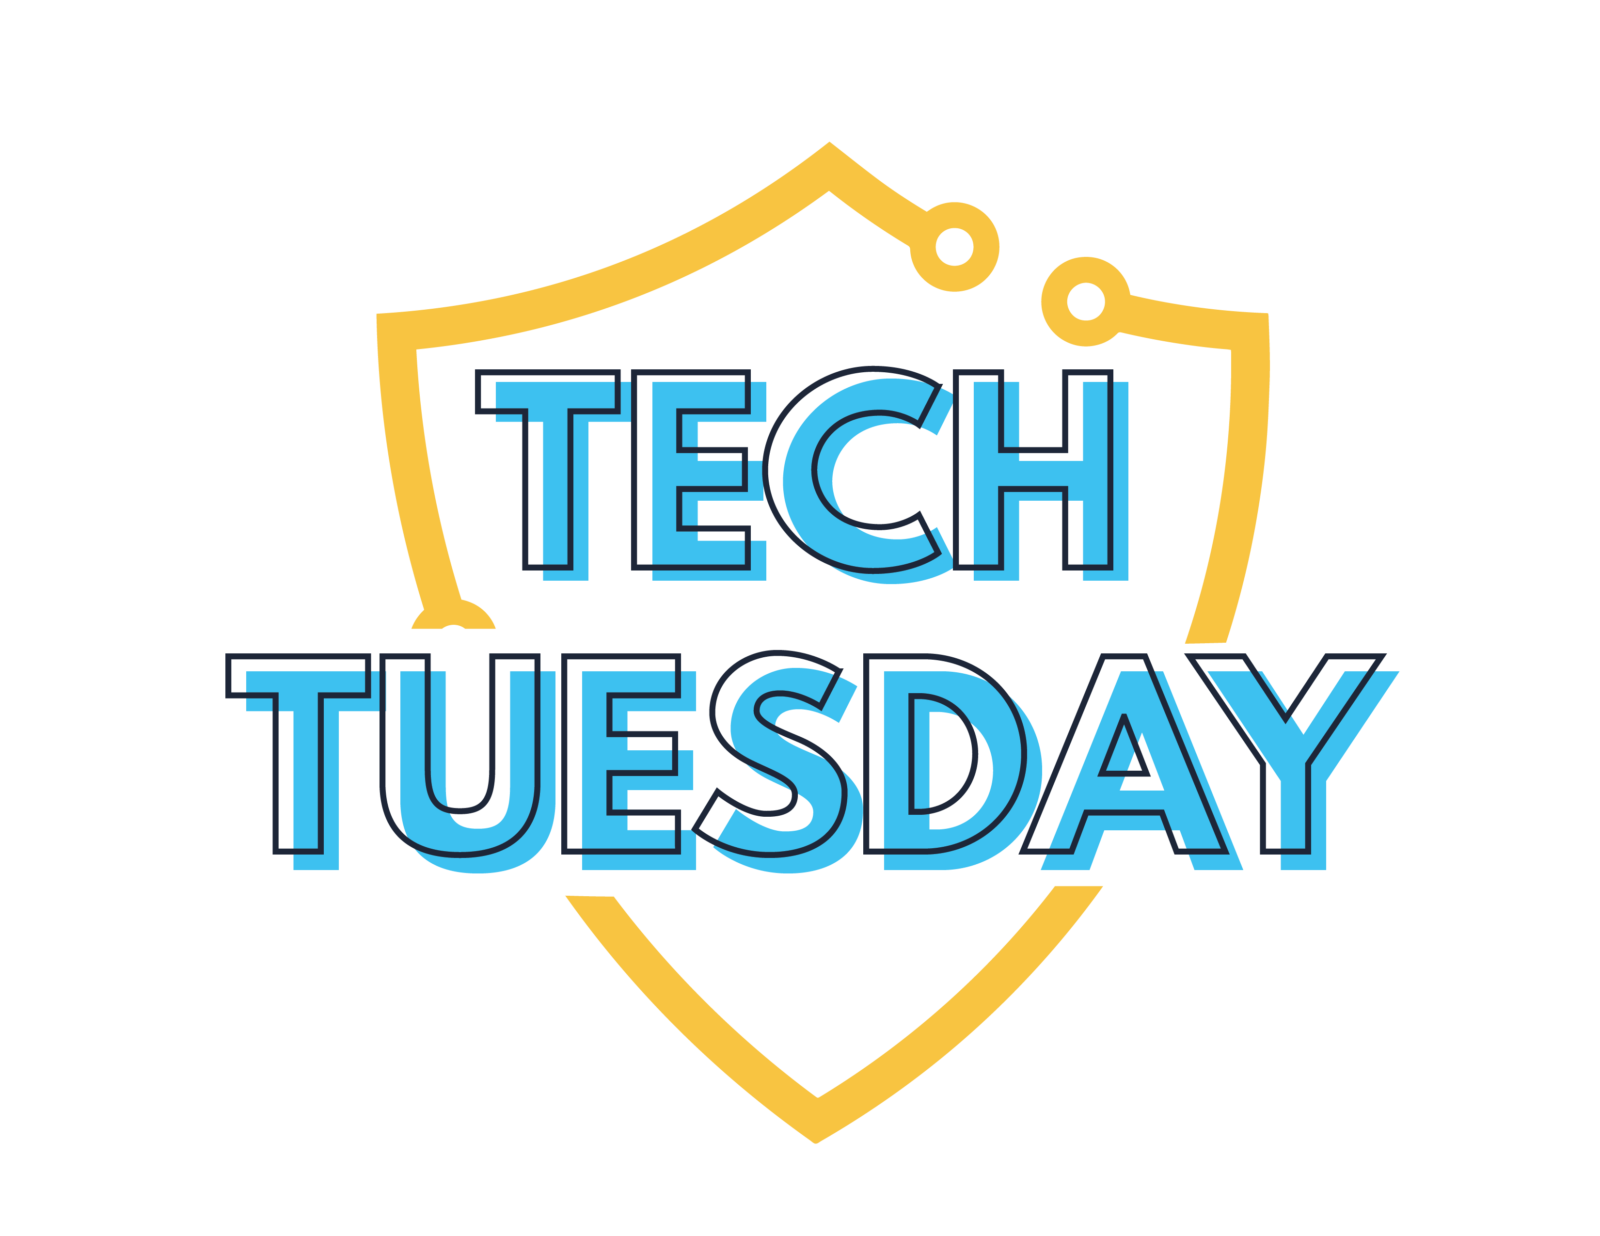 Join us for Safe Tech Tuesday!